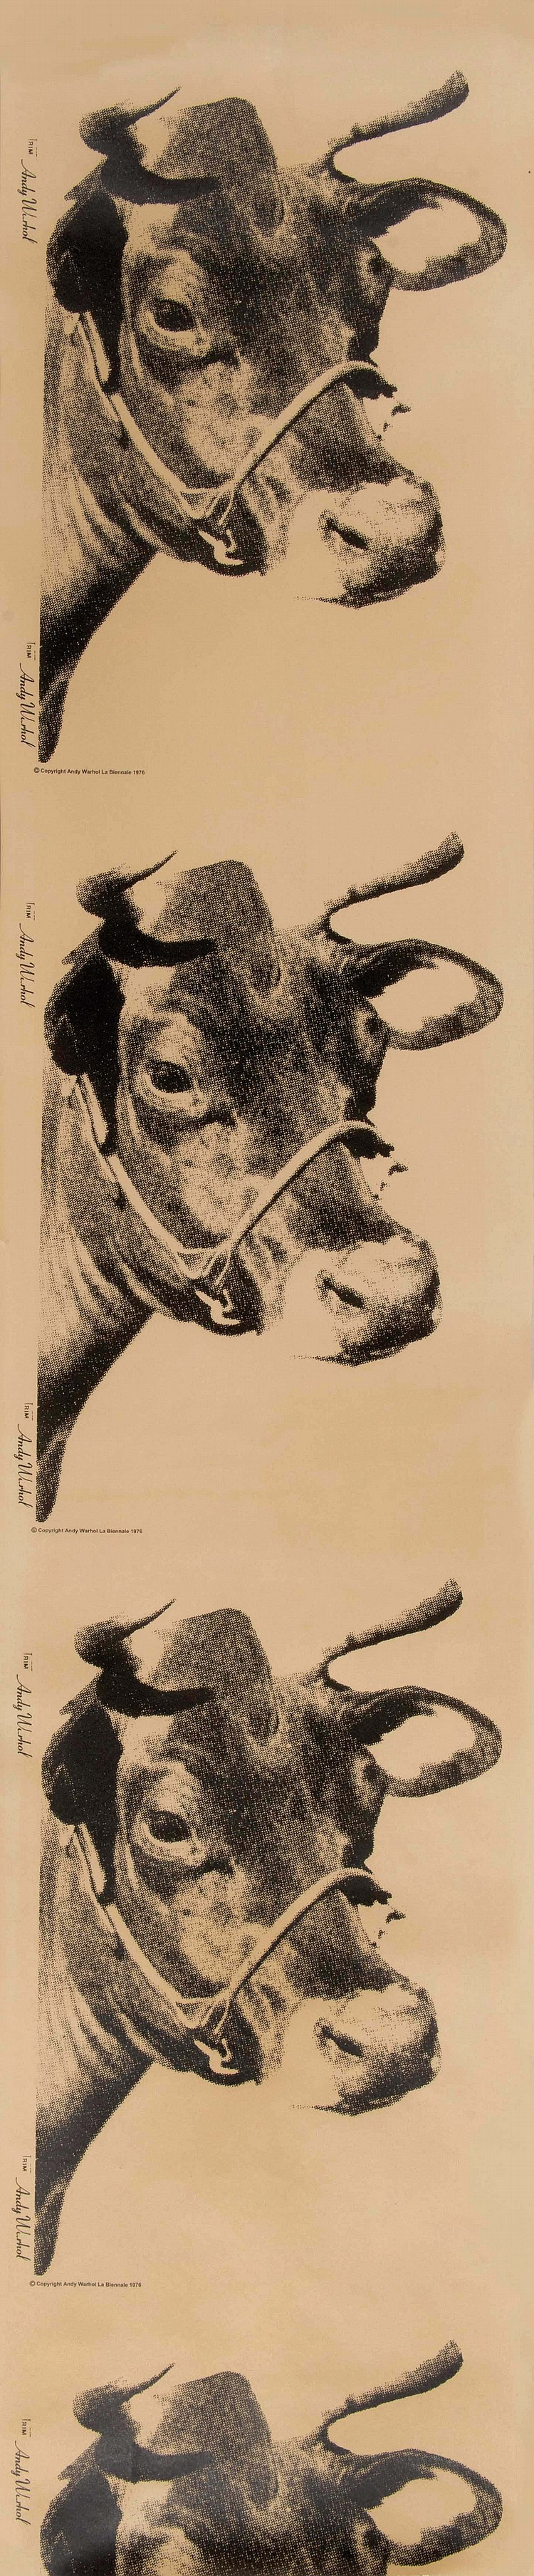 ANDY WARHOL (USA/1928-1987)  Cow Wallpaper, 1976